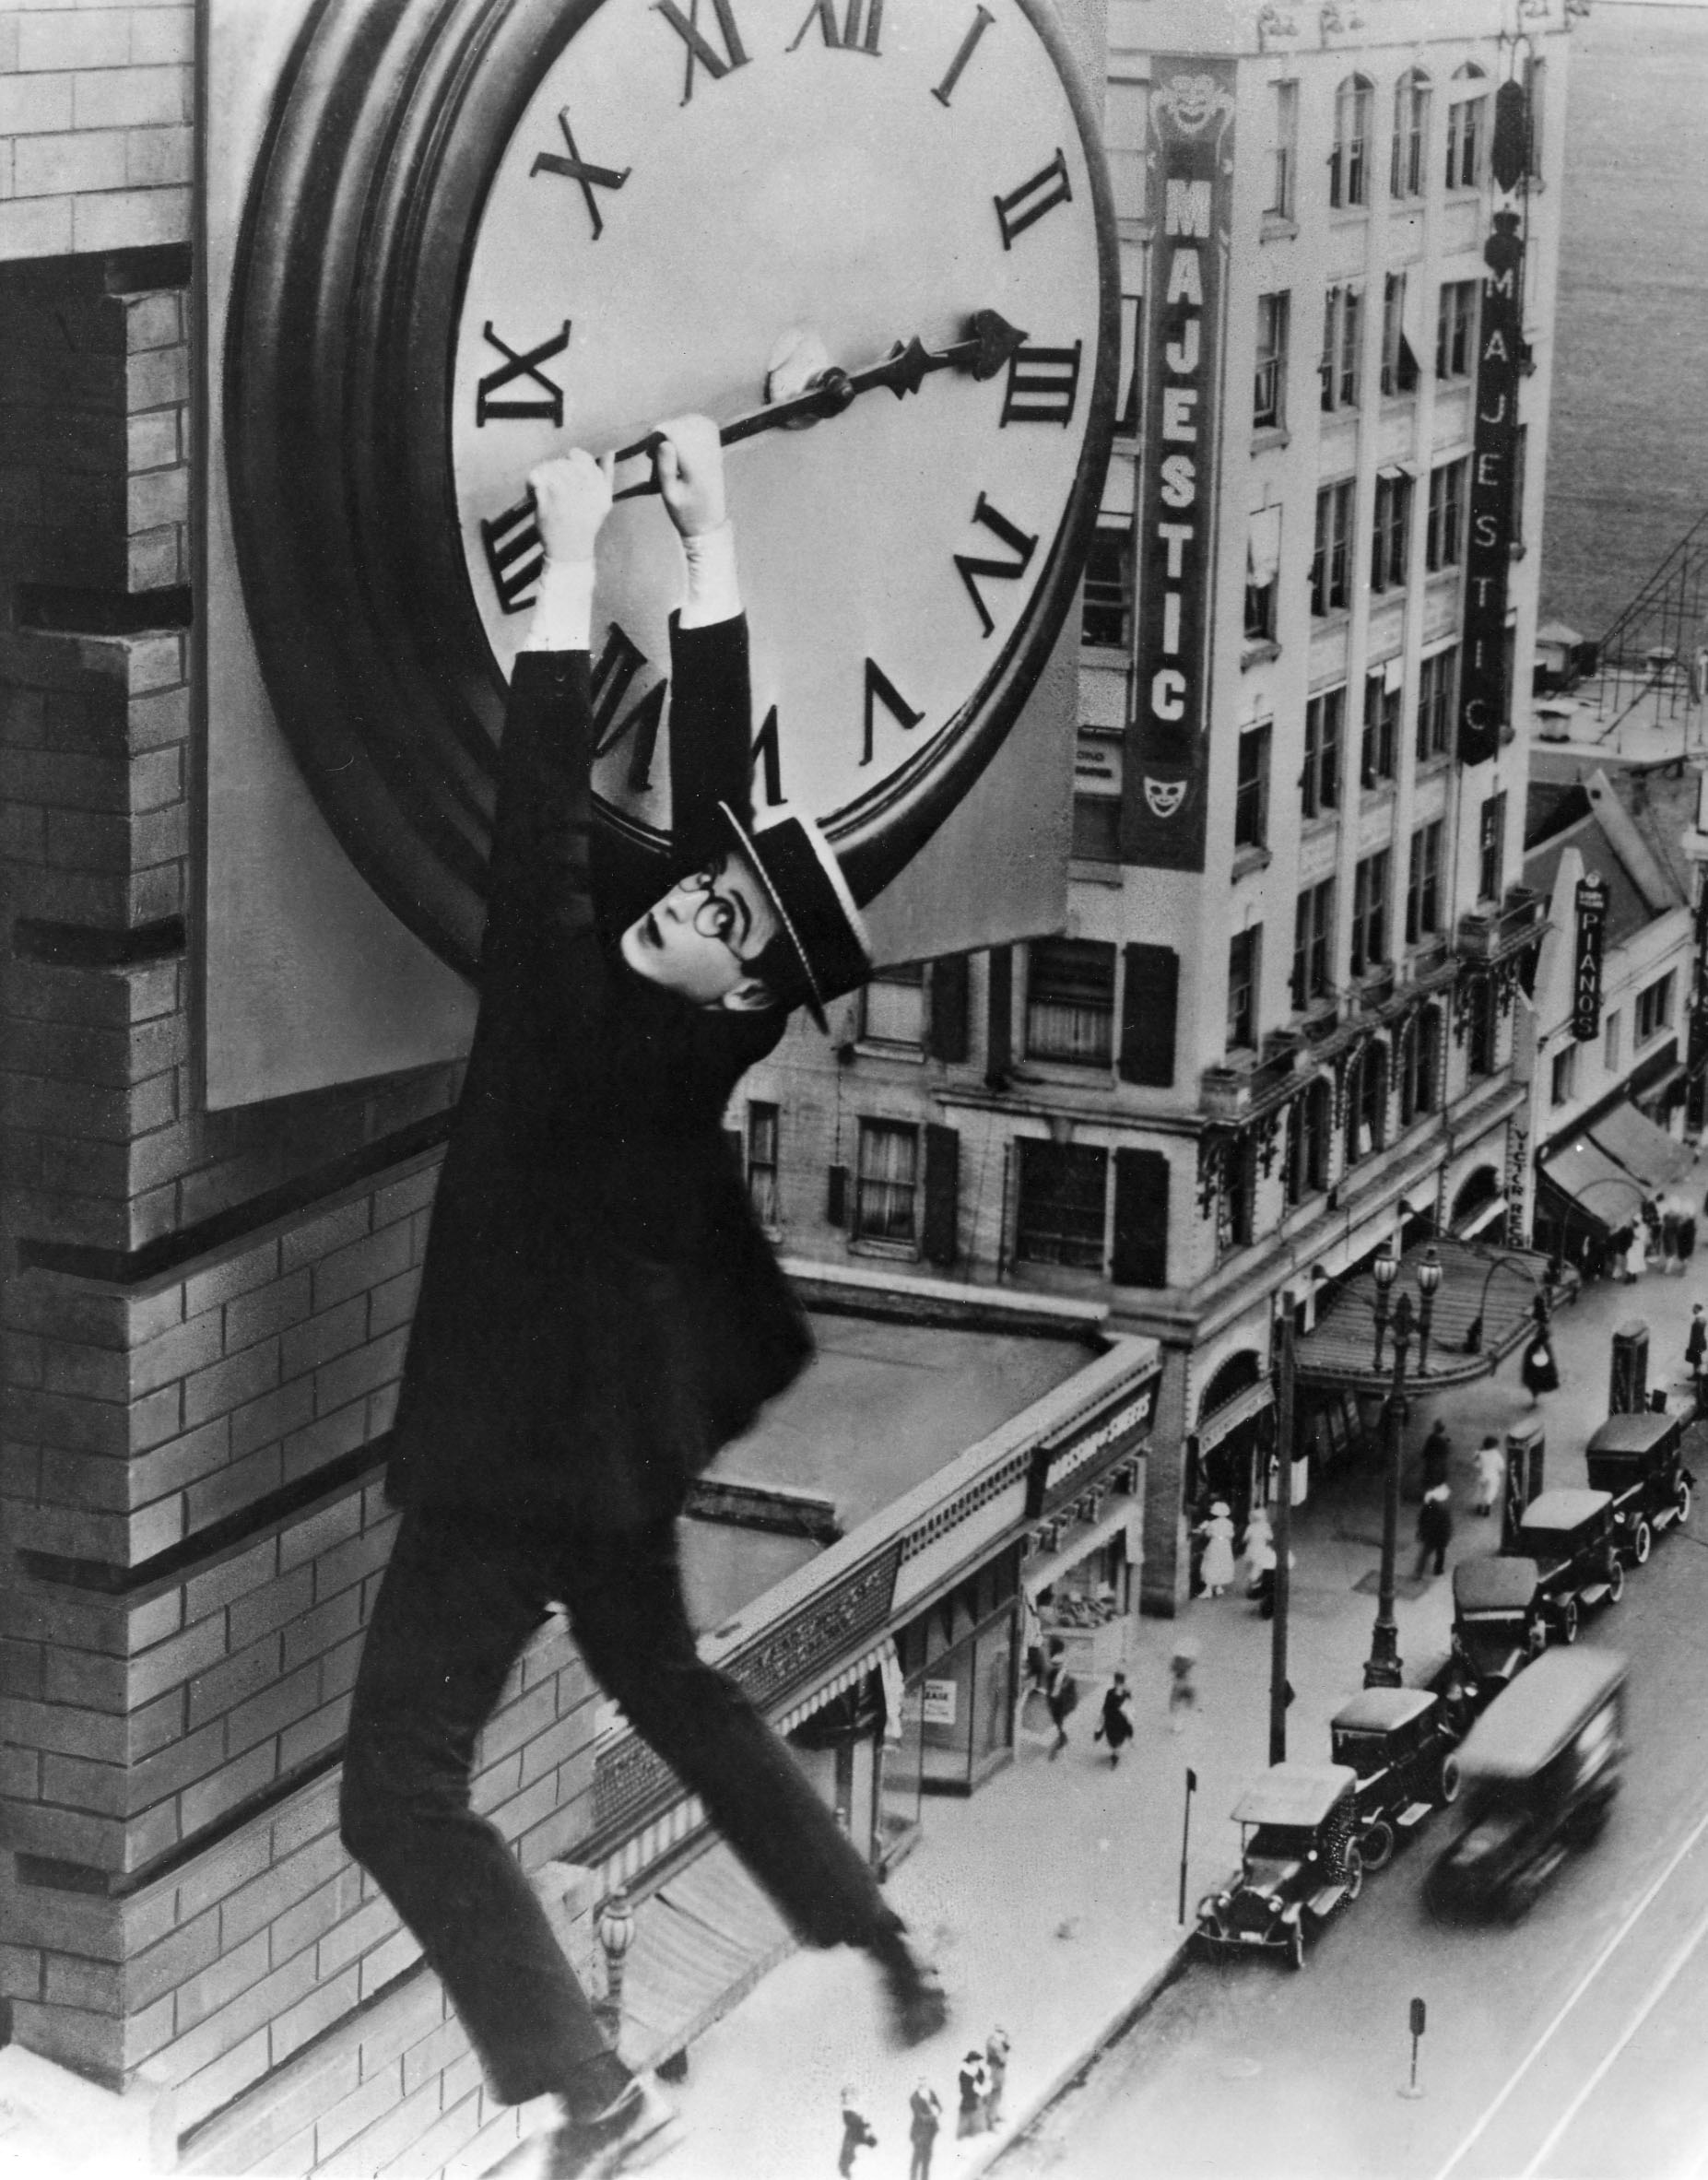 MAN IS THE MEASURE OF TIME